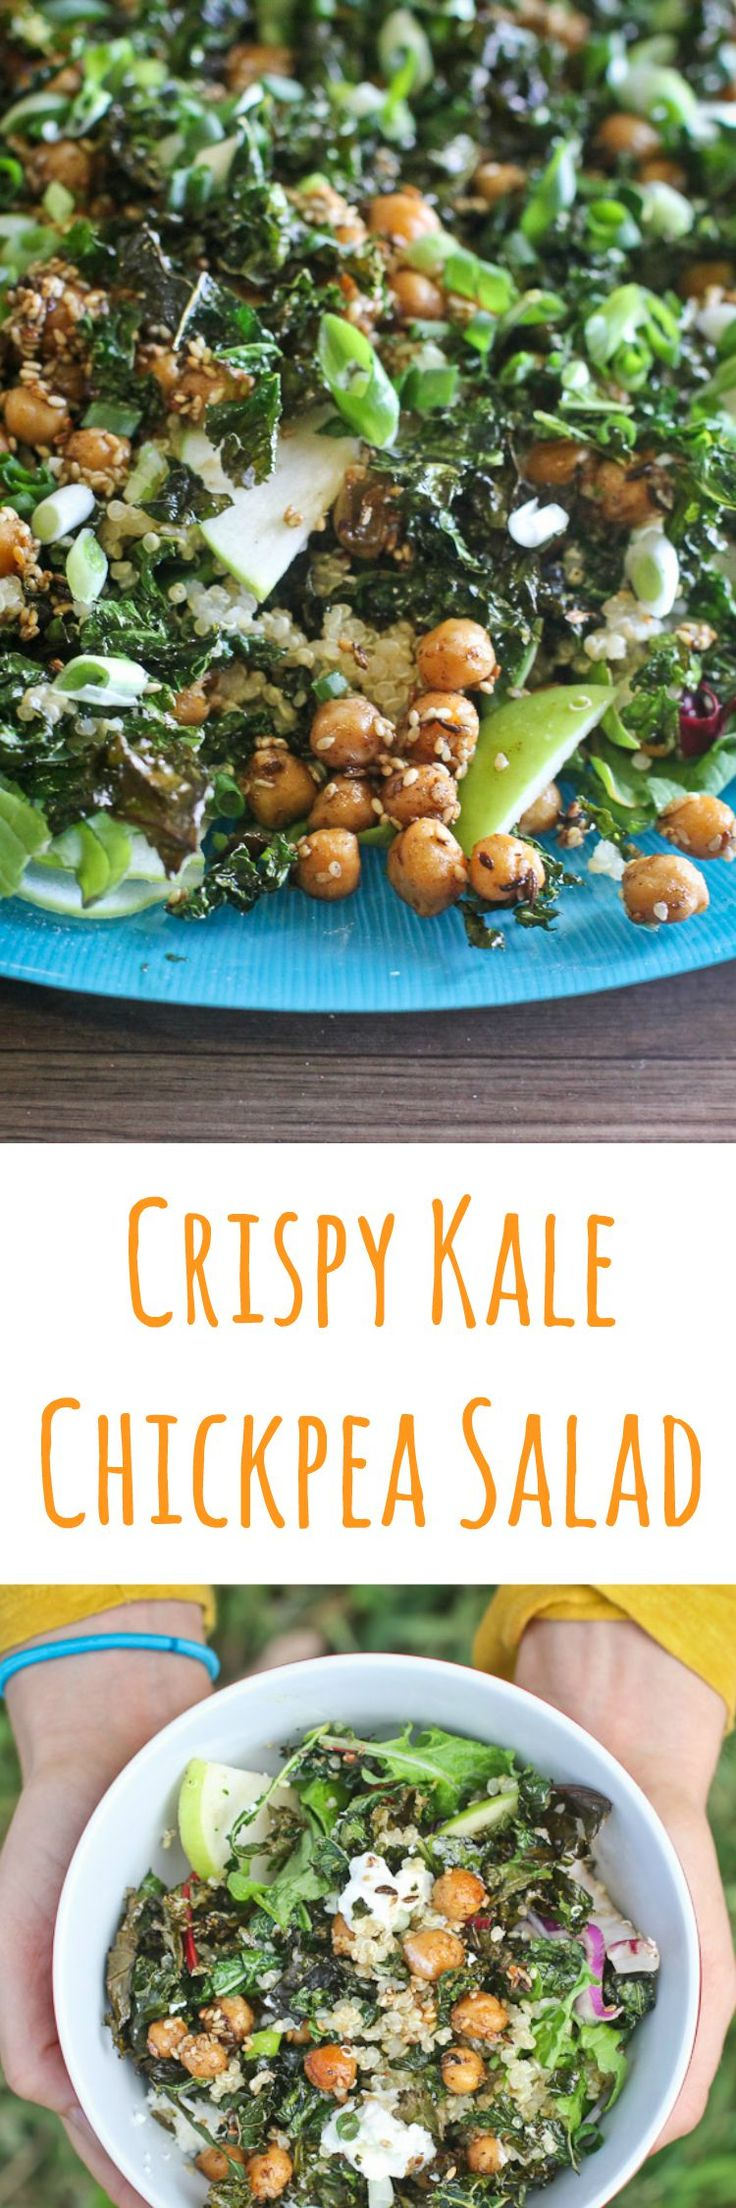 Crispy Kale, Quinoa & Chickpea Salad can be made in less than 30 minutes. This delightful wholefood salad is perfect to add to any seasonal table.